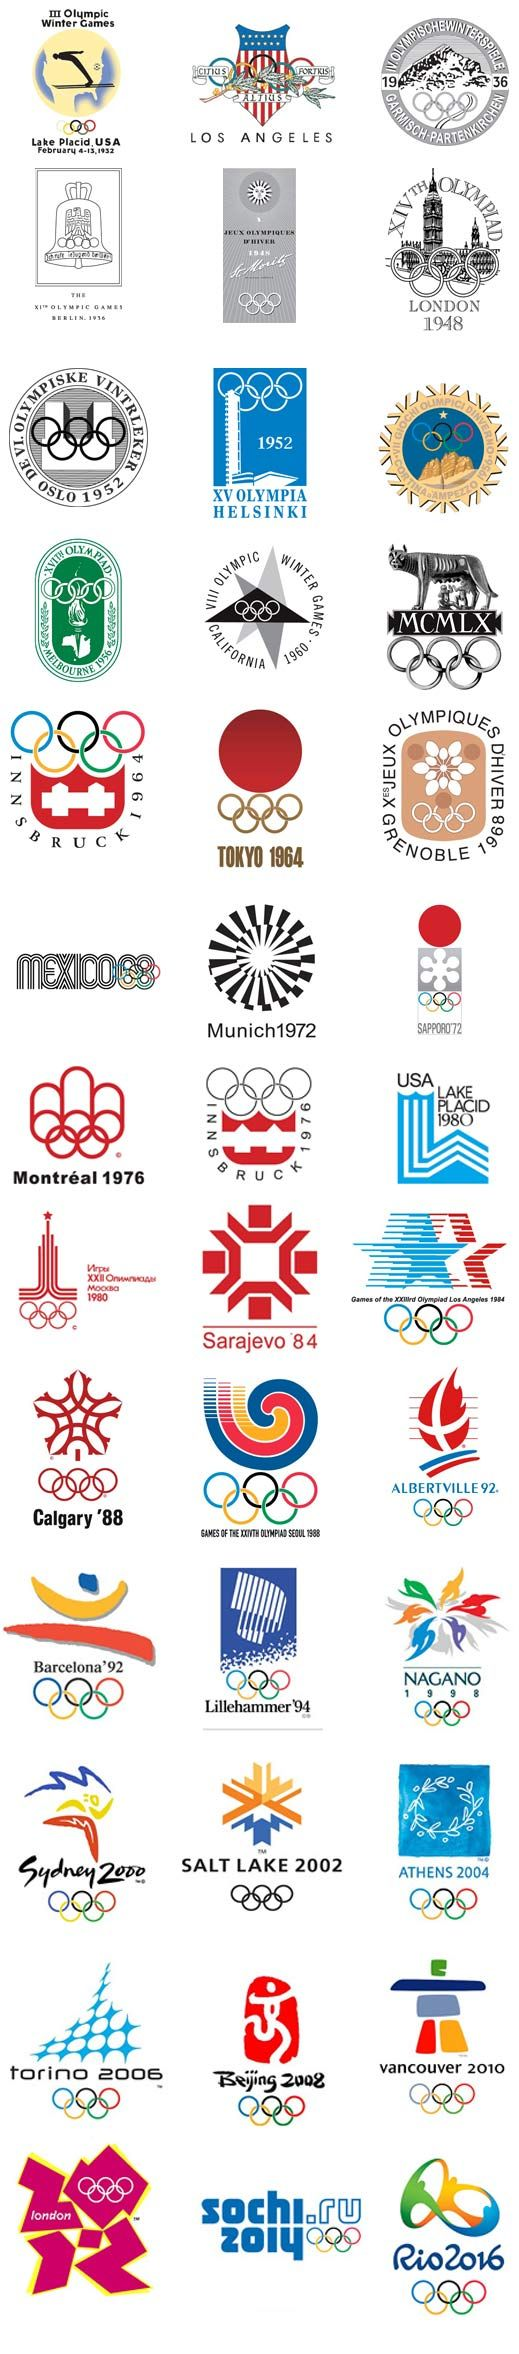 Olympic Logos history 1932 to rio 2016.  Just a few are worth remembering...